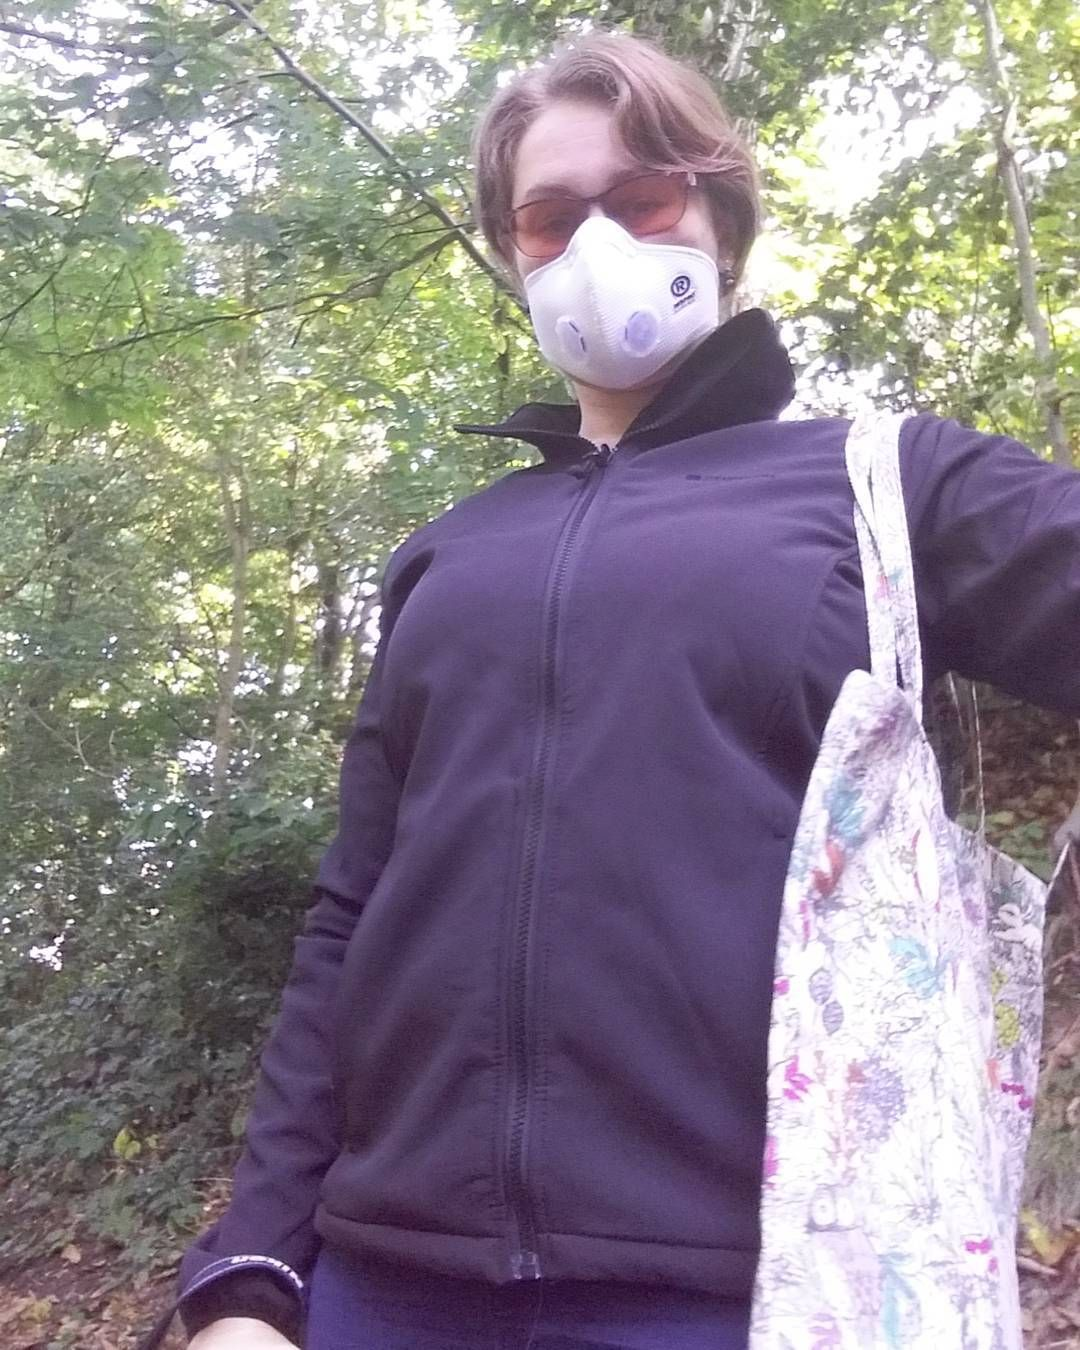 Walk in the park. I love autumn and I can actually enjoy it without worrying about allergies now. #Respro #AllergyMask #Facemask